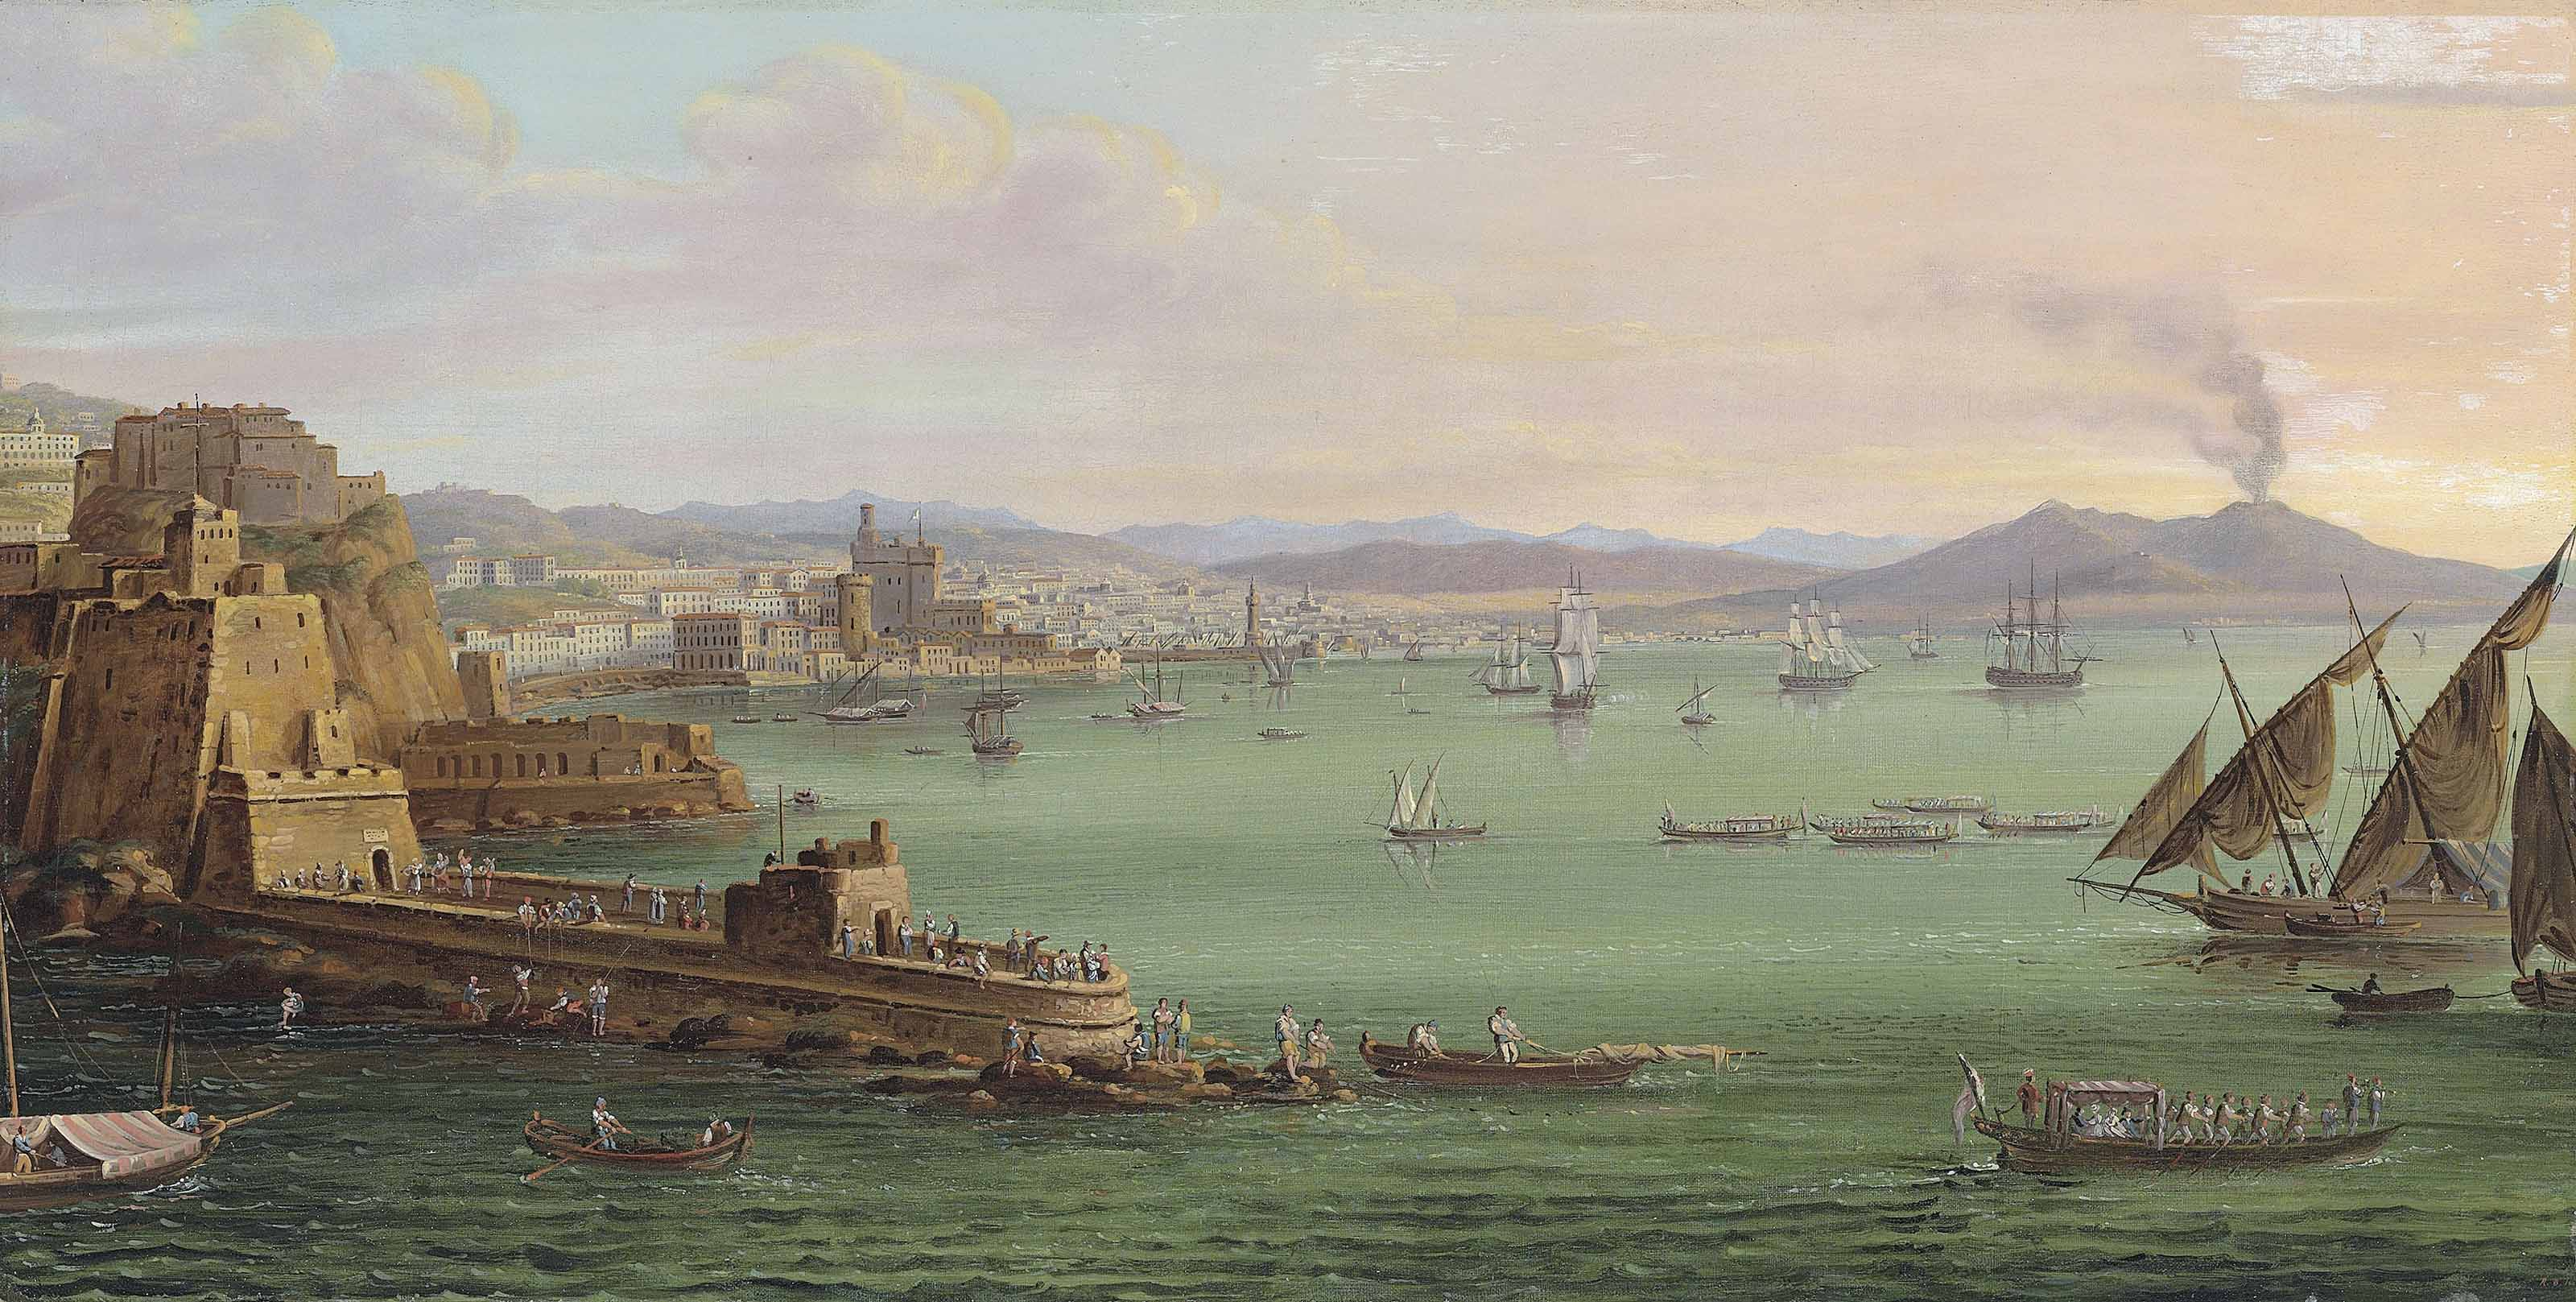 The bay of Naples with the Castel dell'Ovo, the Vesuvius beyond